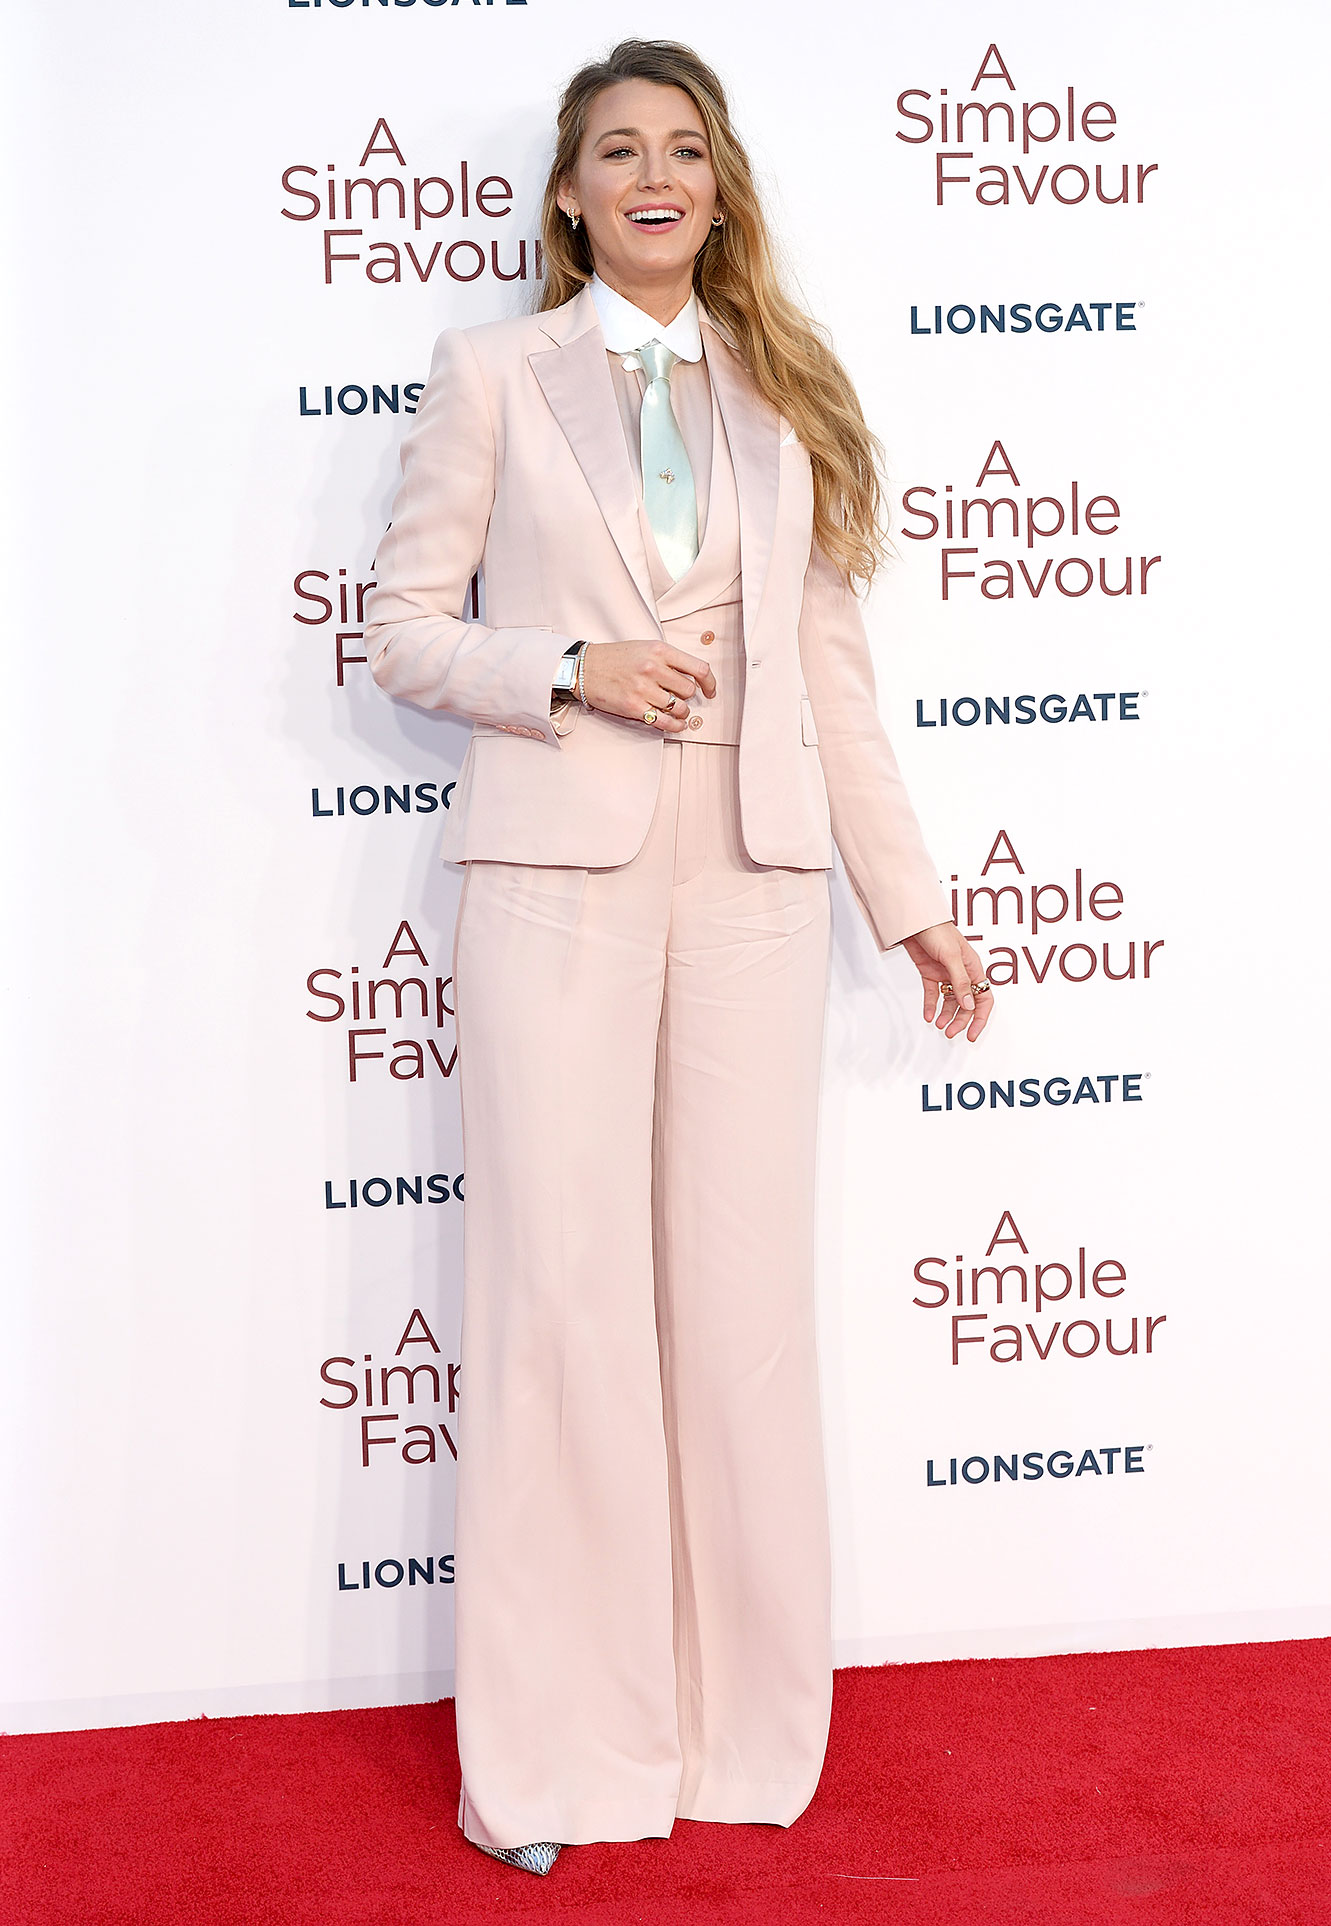 Blake Lively Red Carpet - Blake Lively attends the UK premiere of 'A Simple Favour' at BFI Southbank on September 17, 2018 in London, England.